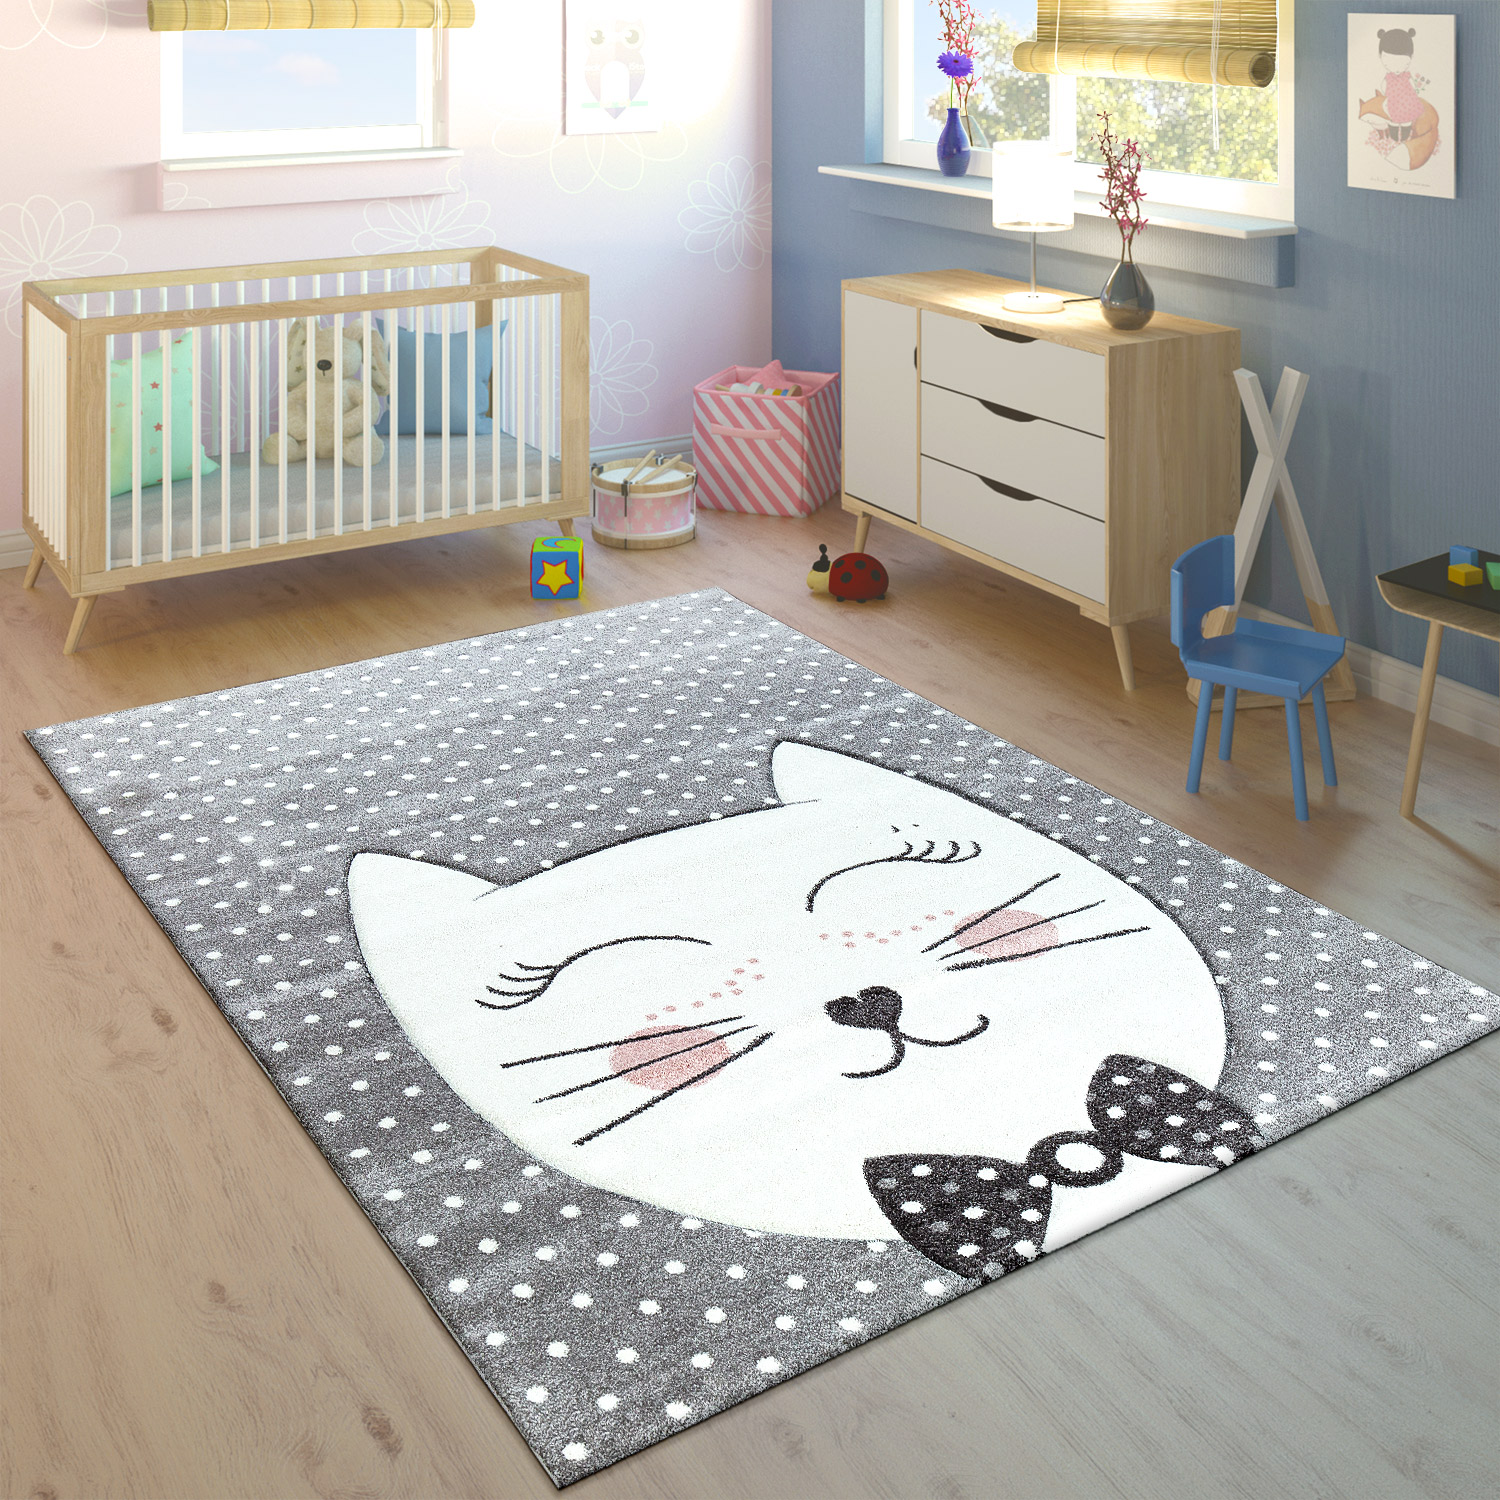 tapis pour enfant chat du cheshire pastel rose tapis enfants. Black Bedroom Furniture Sets. Home Design Ideas